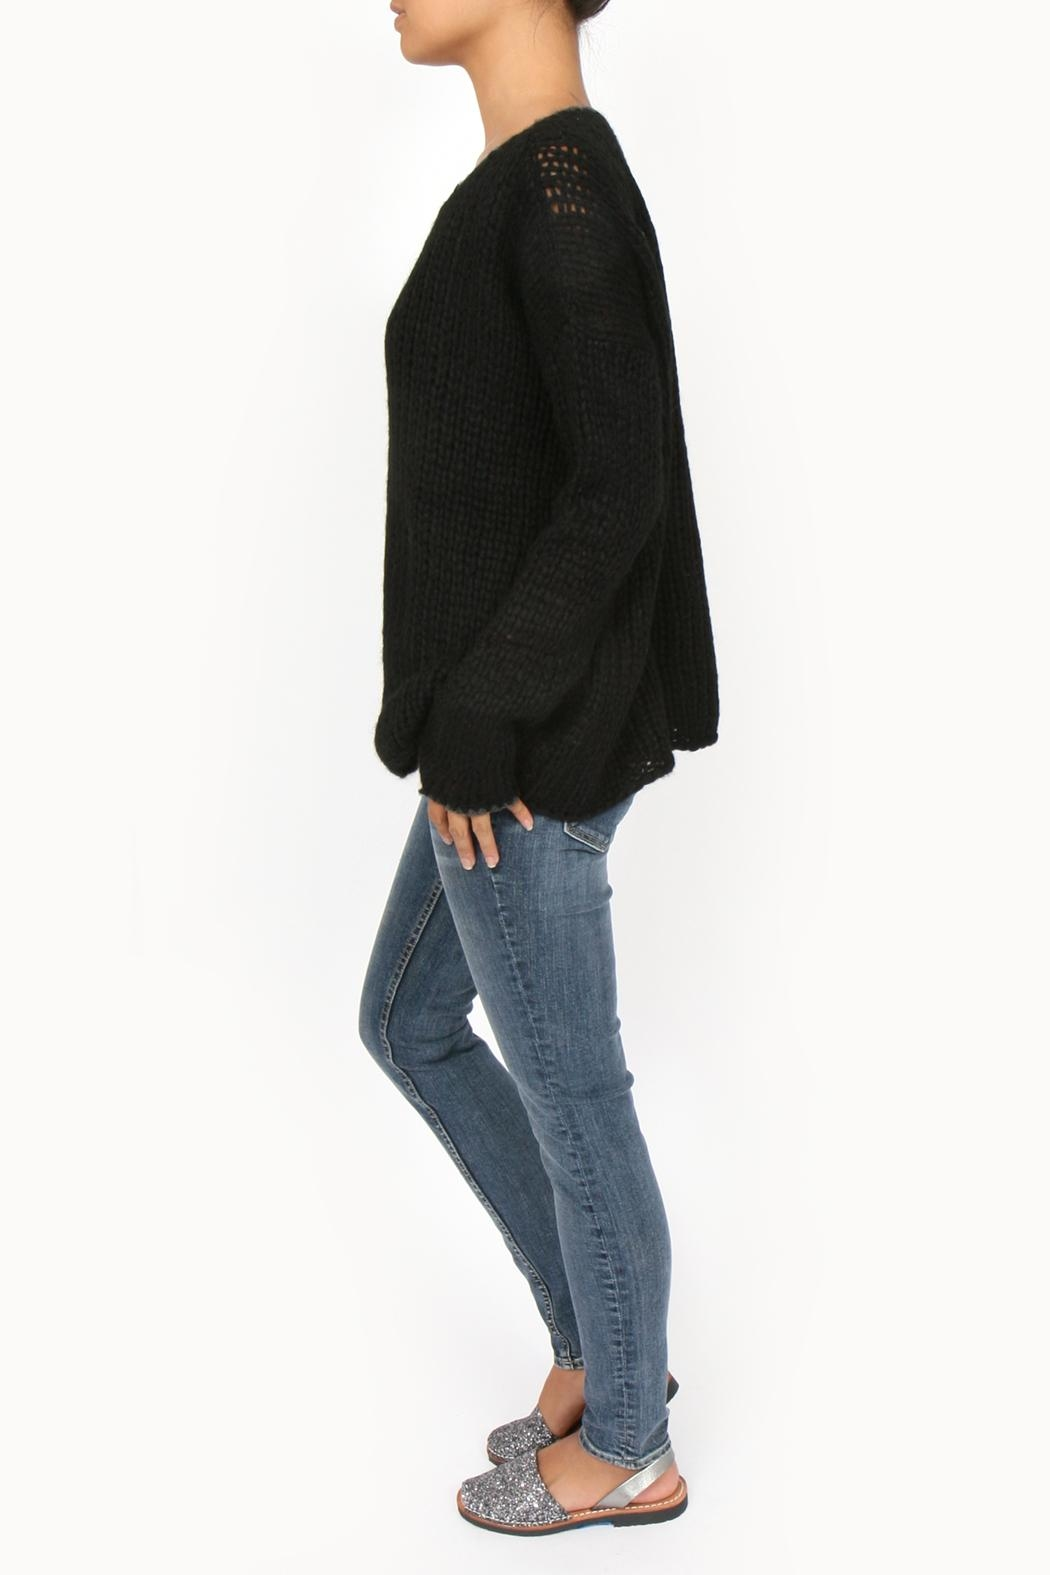 Neesh by D.A.R. Family Stone Sweater - Front Full Image